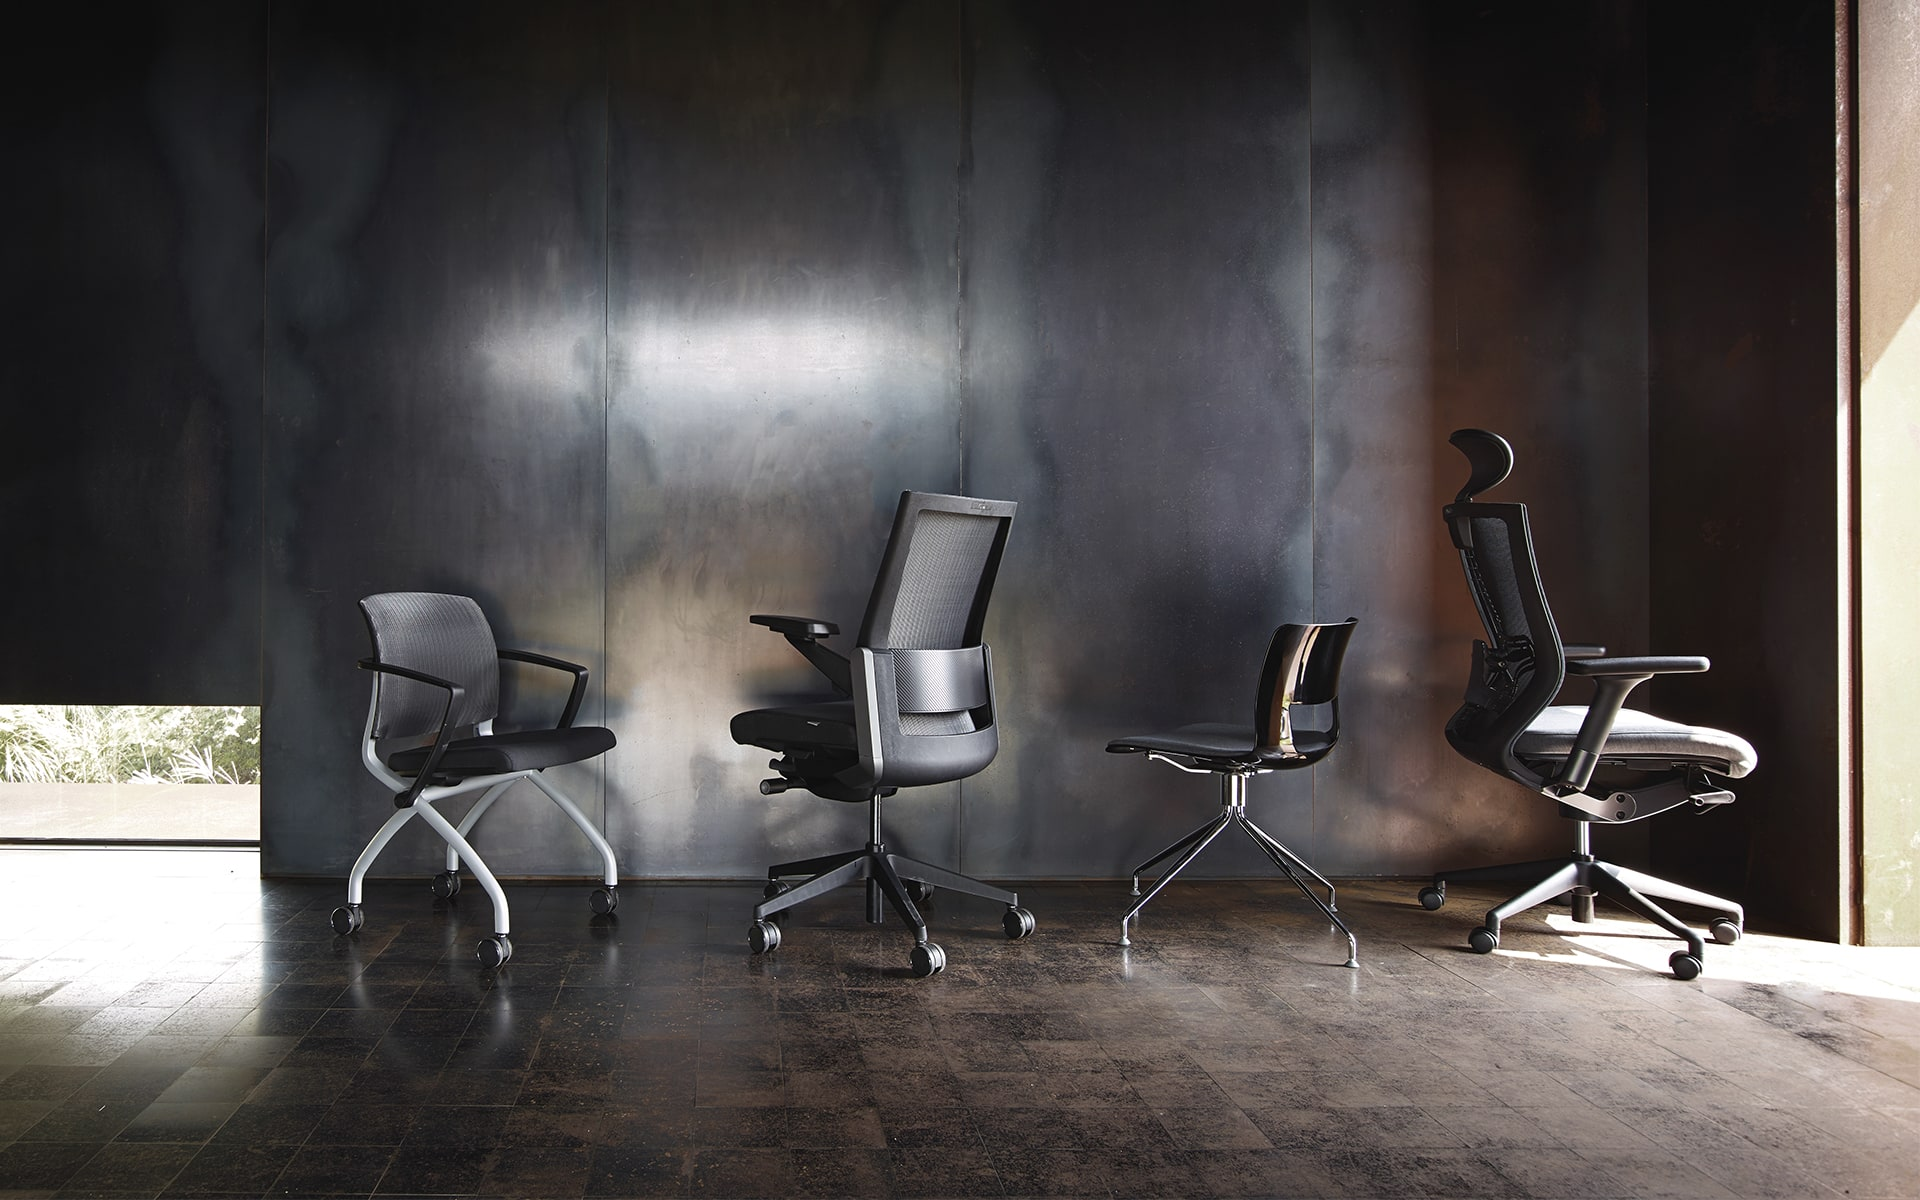 Black-gray Sidiz T80 executive office chair by ITO Design with other chairs in front of metal wall in empty room